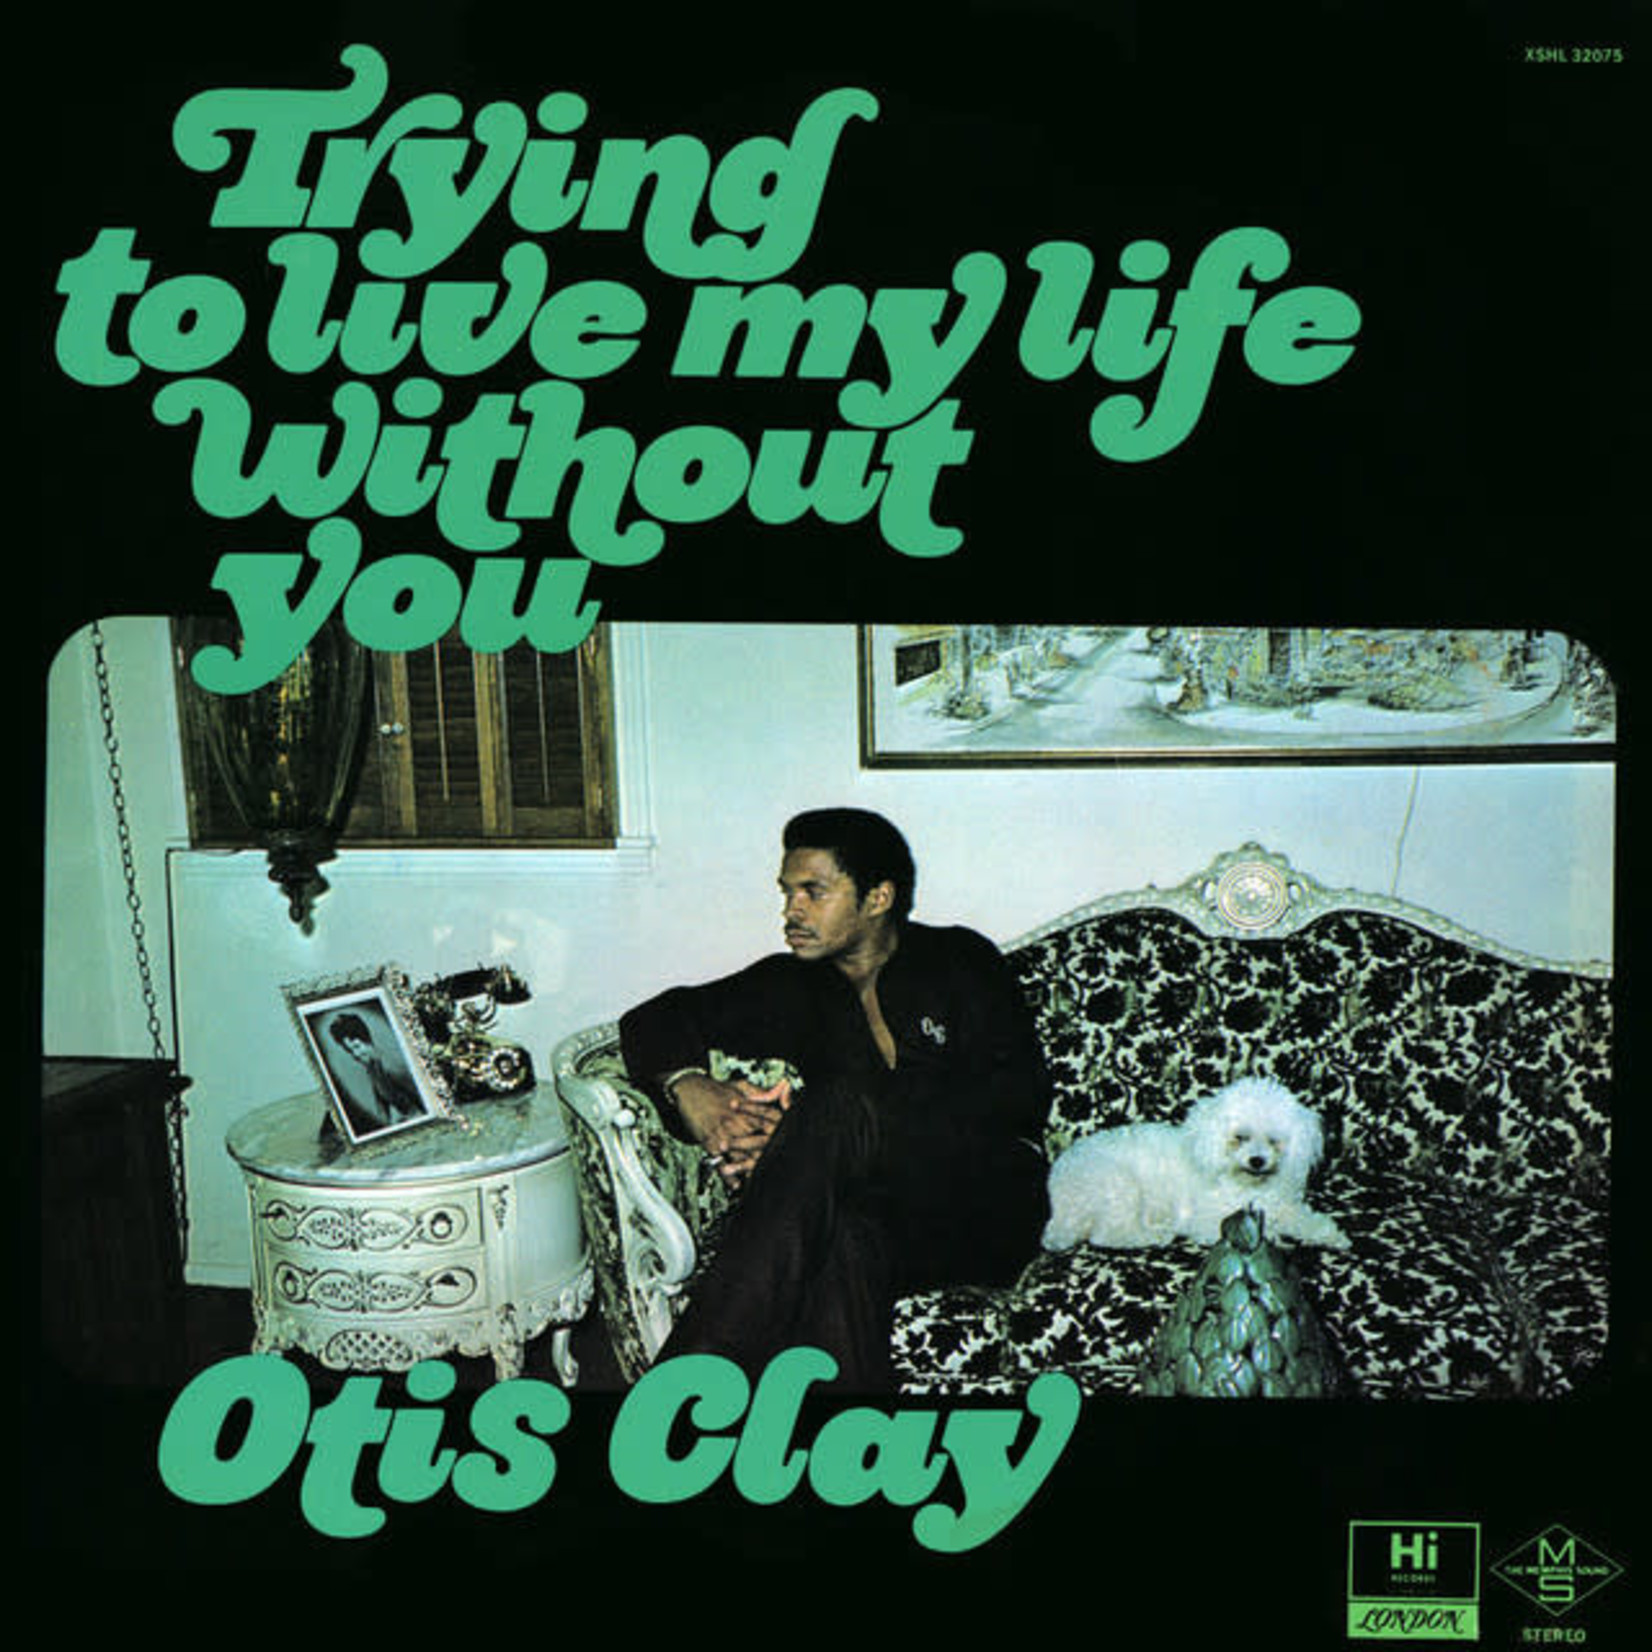 Vinyl Otis Clay - Trying To Live My Life Without You